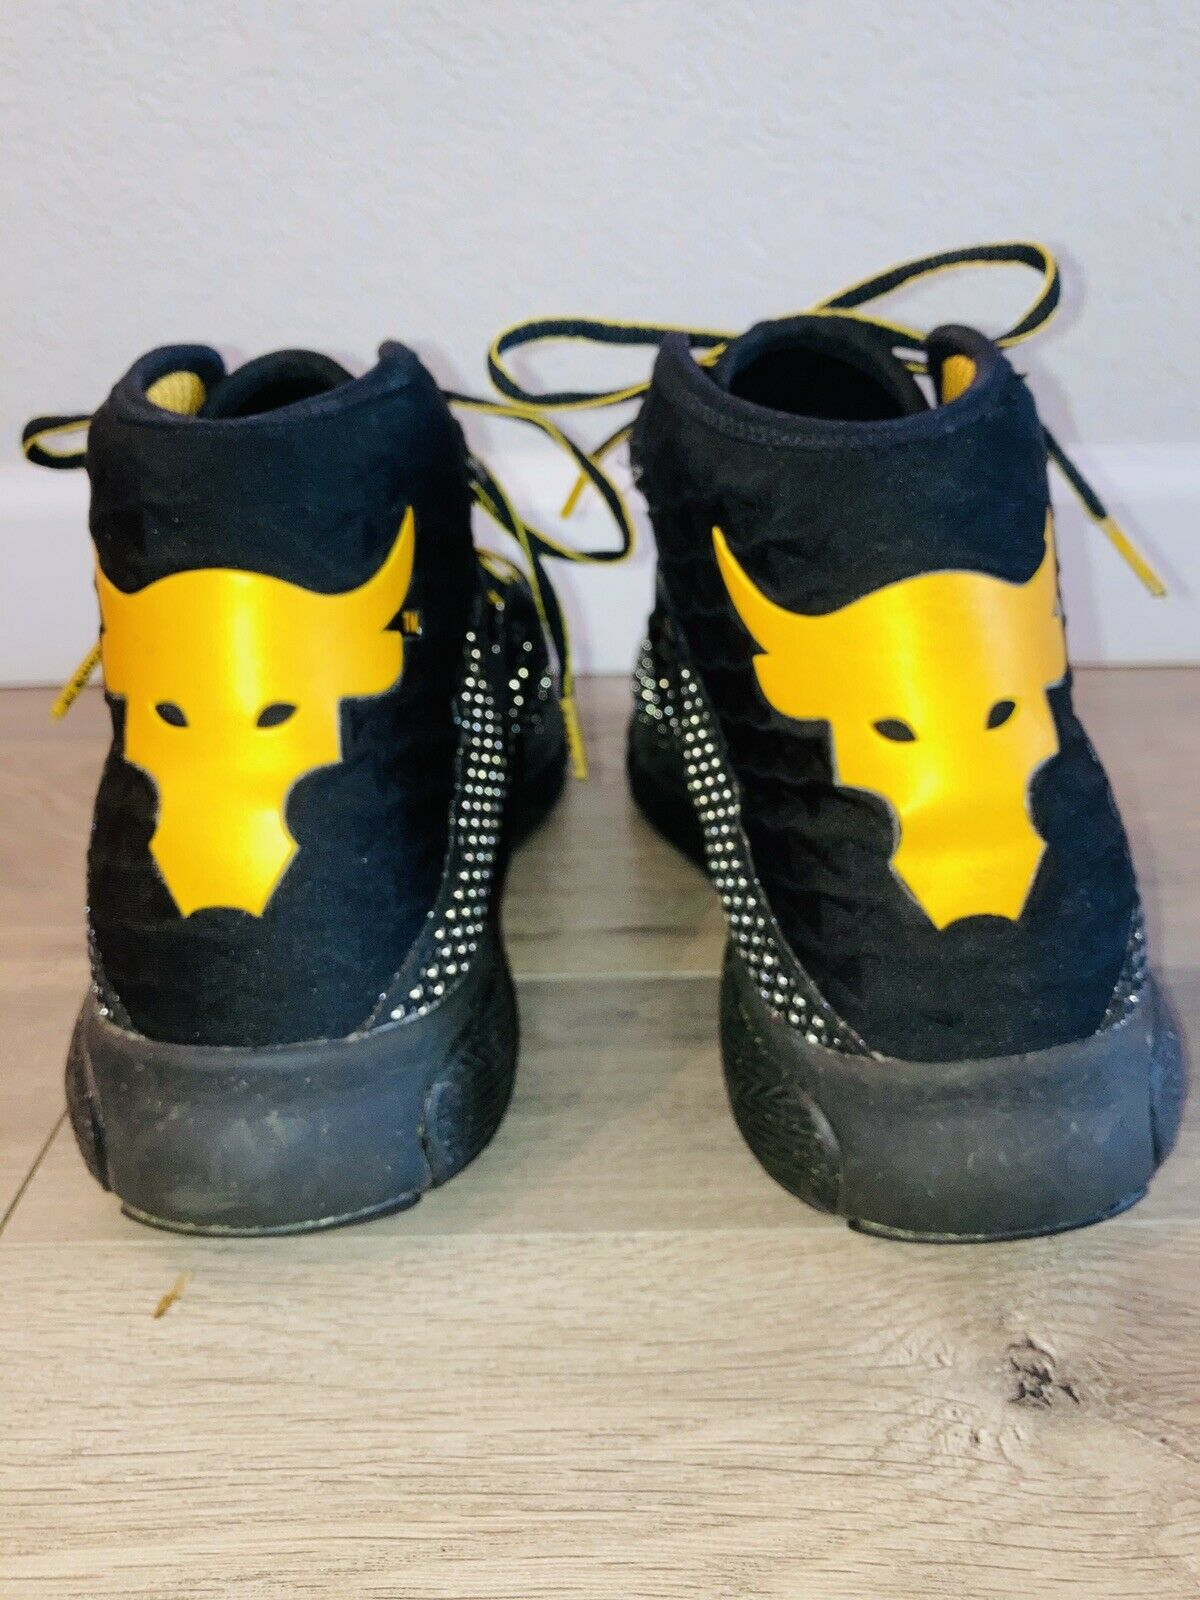 Tutor Facturable Bien educado  Under Armour UA Project The Rock Delta Highlight Shoes Black Yellow 12.5  for sale online   eBay